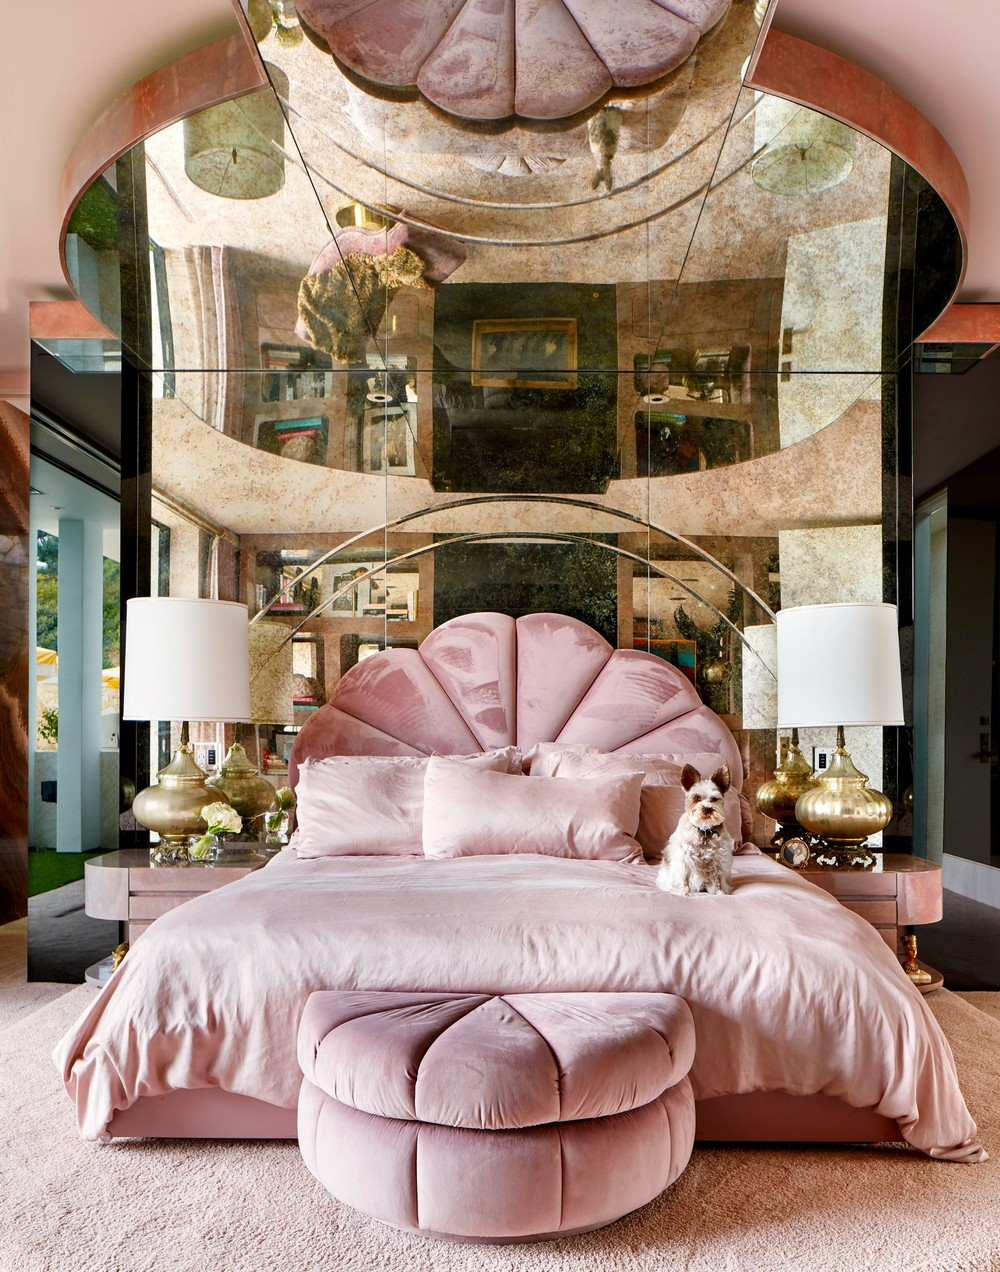 Architectural Digest Shows The Latest Design Project By Lenny Kravitz architectural digest Architectural Digest Shows The Latest Design Project By Lenny Kravitz Architectural Digest Shows The Latest Design Project By Lenny Kravitz 3